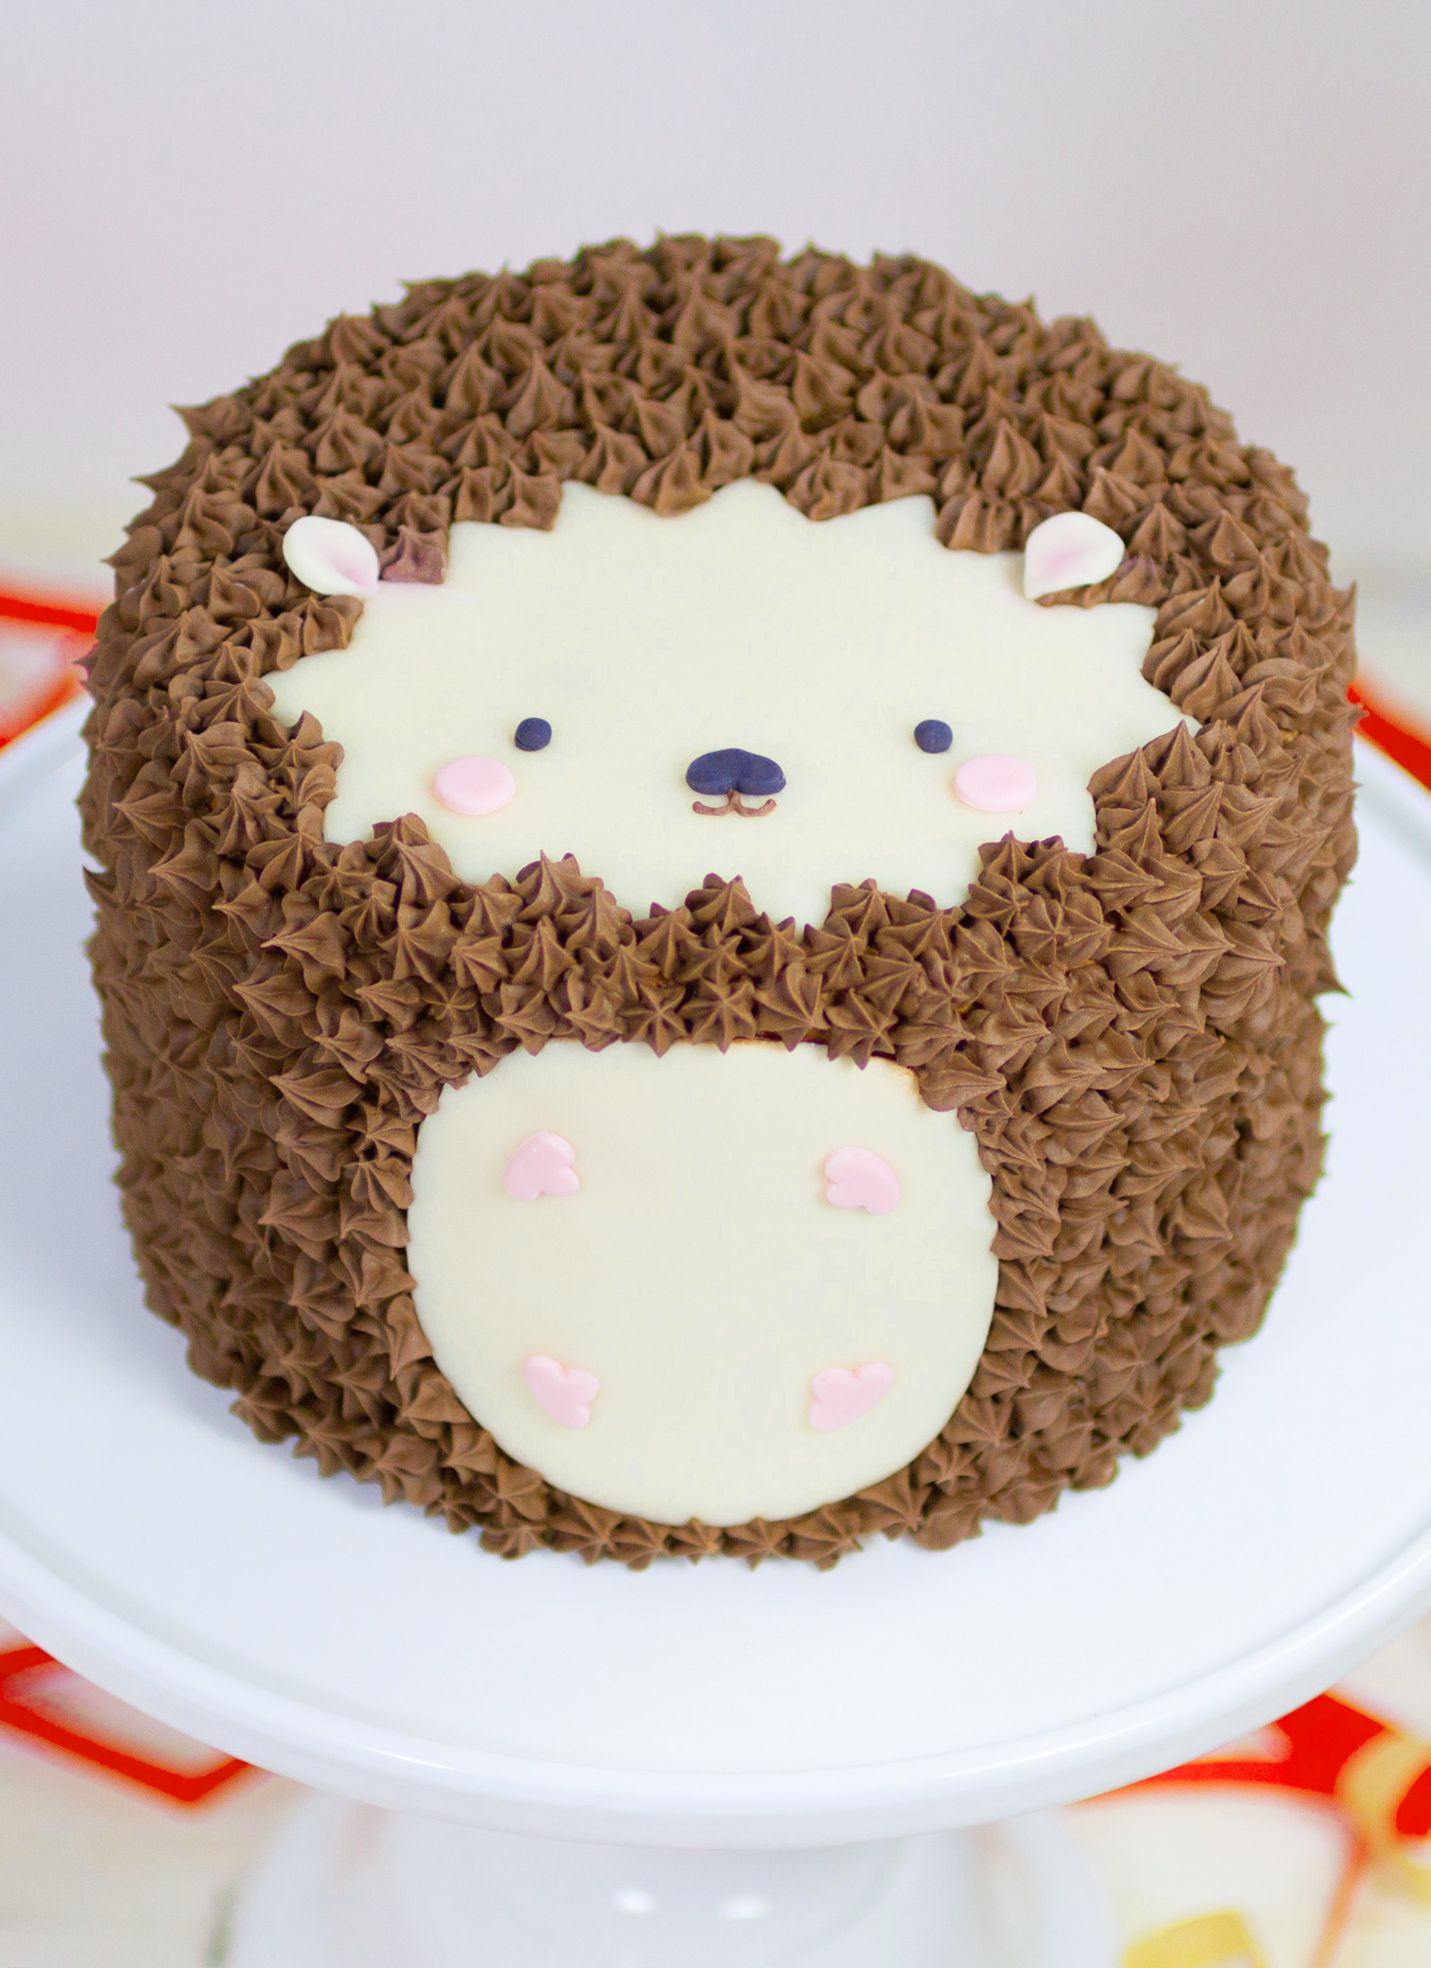 Pleasing Hedgehog Cake By Whipped Bakeshop In Philadelphia With Images Funny Birthday Cards Online Inifodamsfinfo